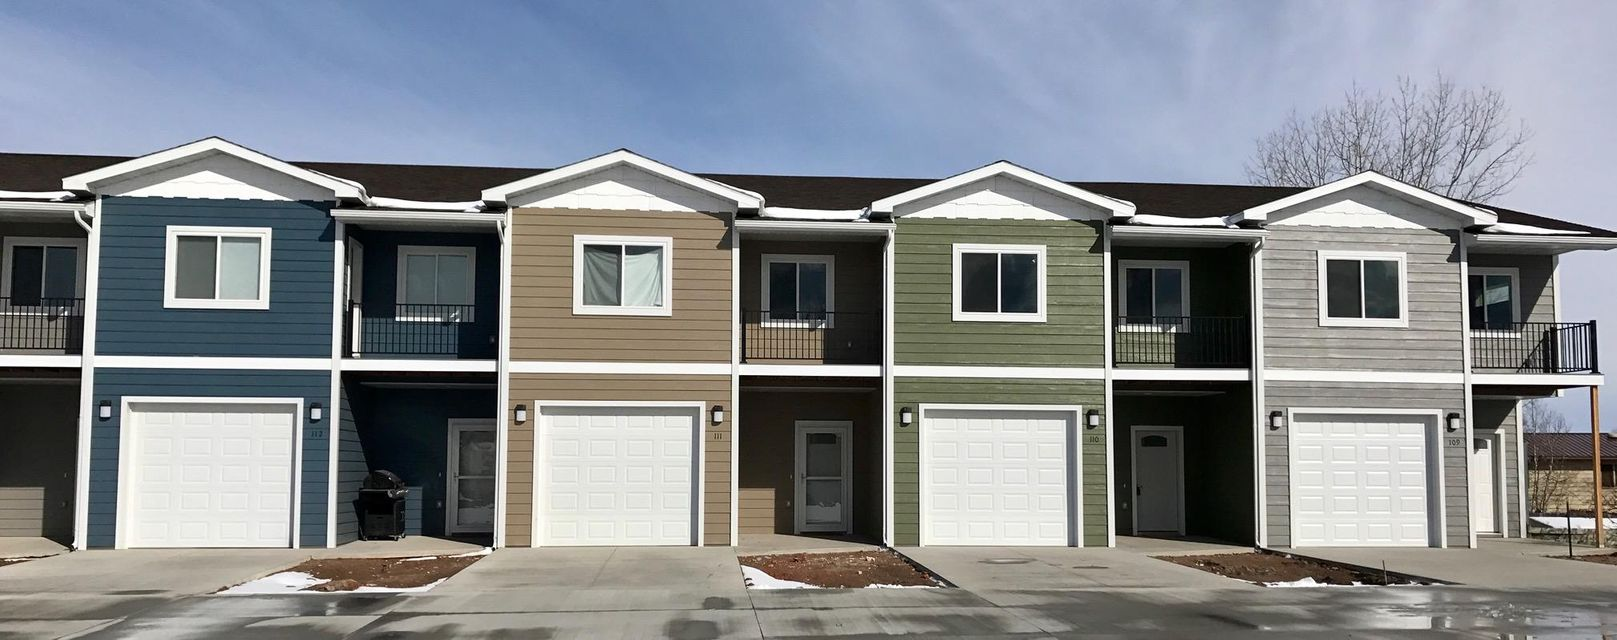 118 Trails West Circle, Ranchester, WY 82839